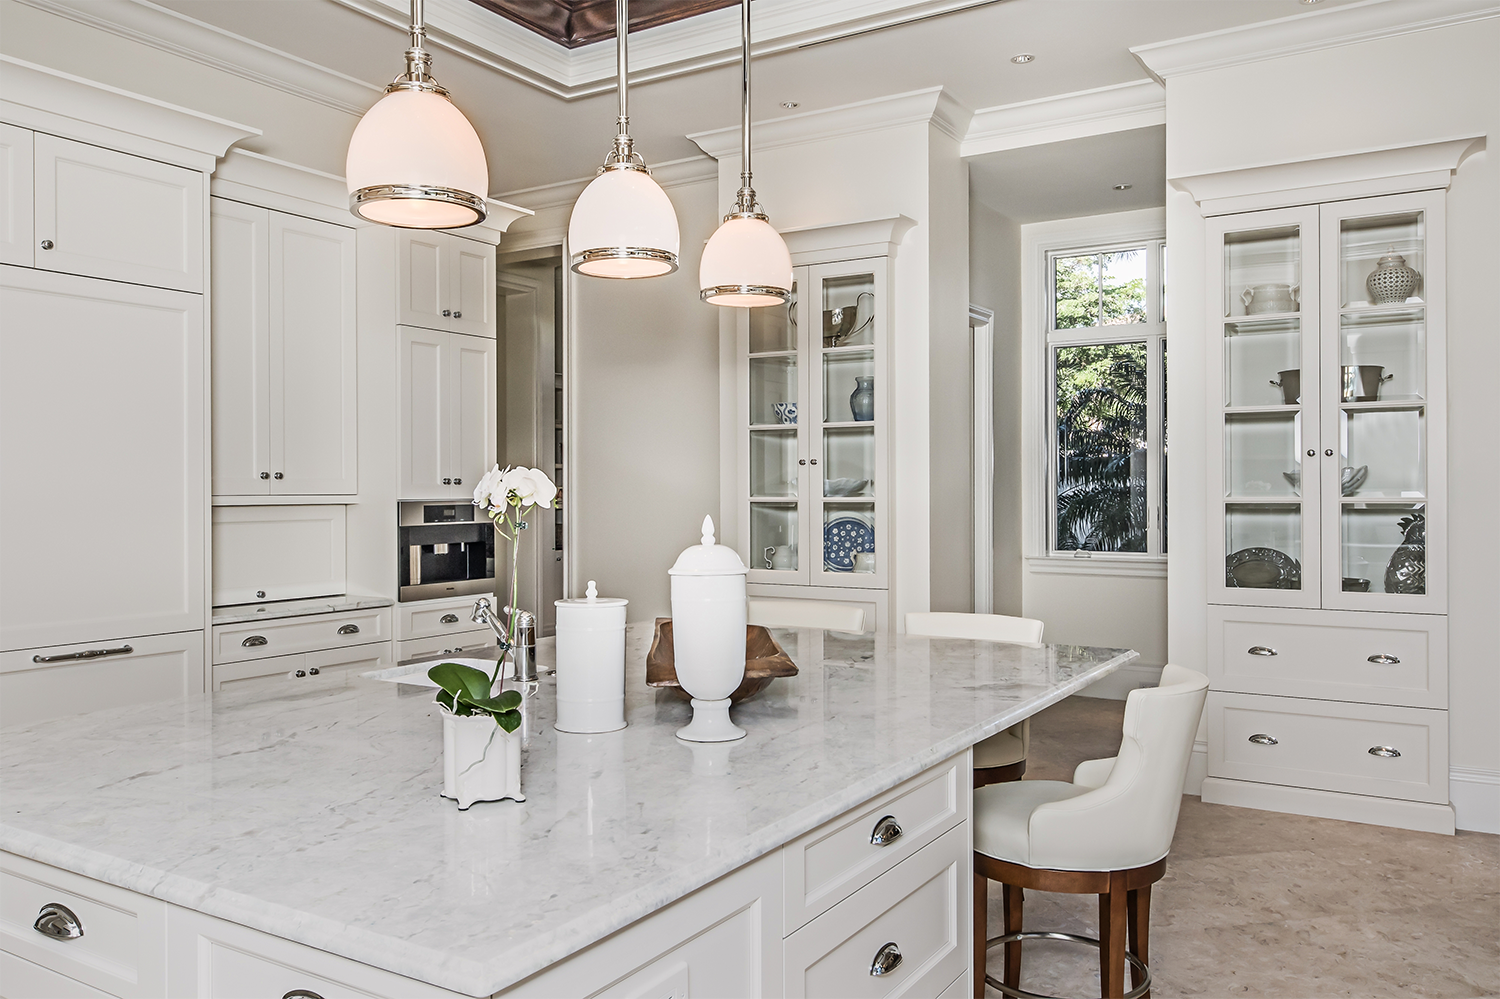 Using Cabinetry To Make An All-White Kitchen Interesting ...